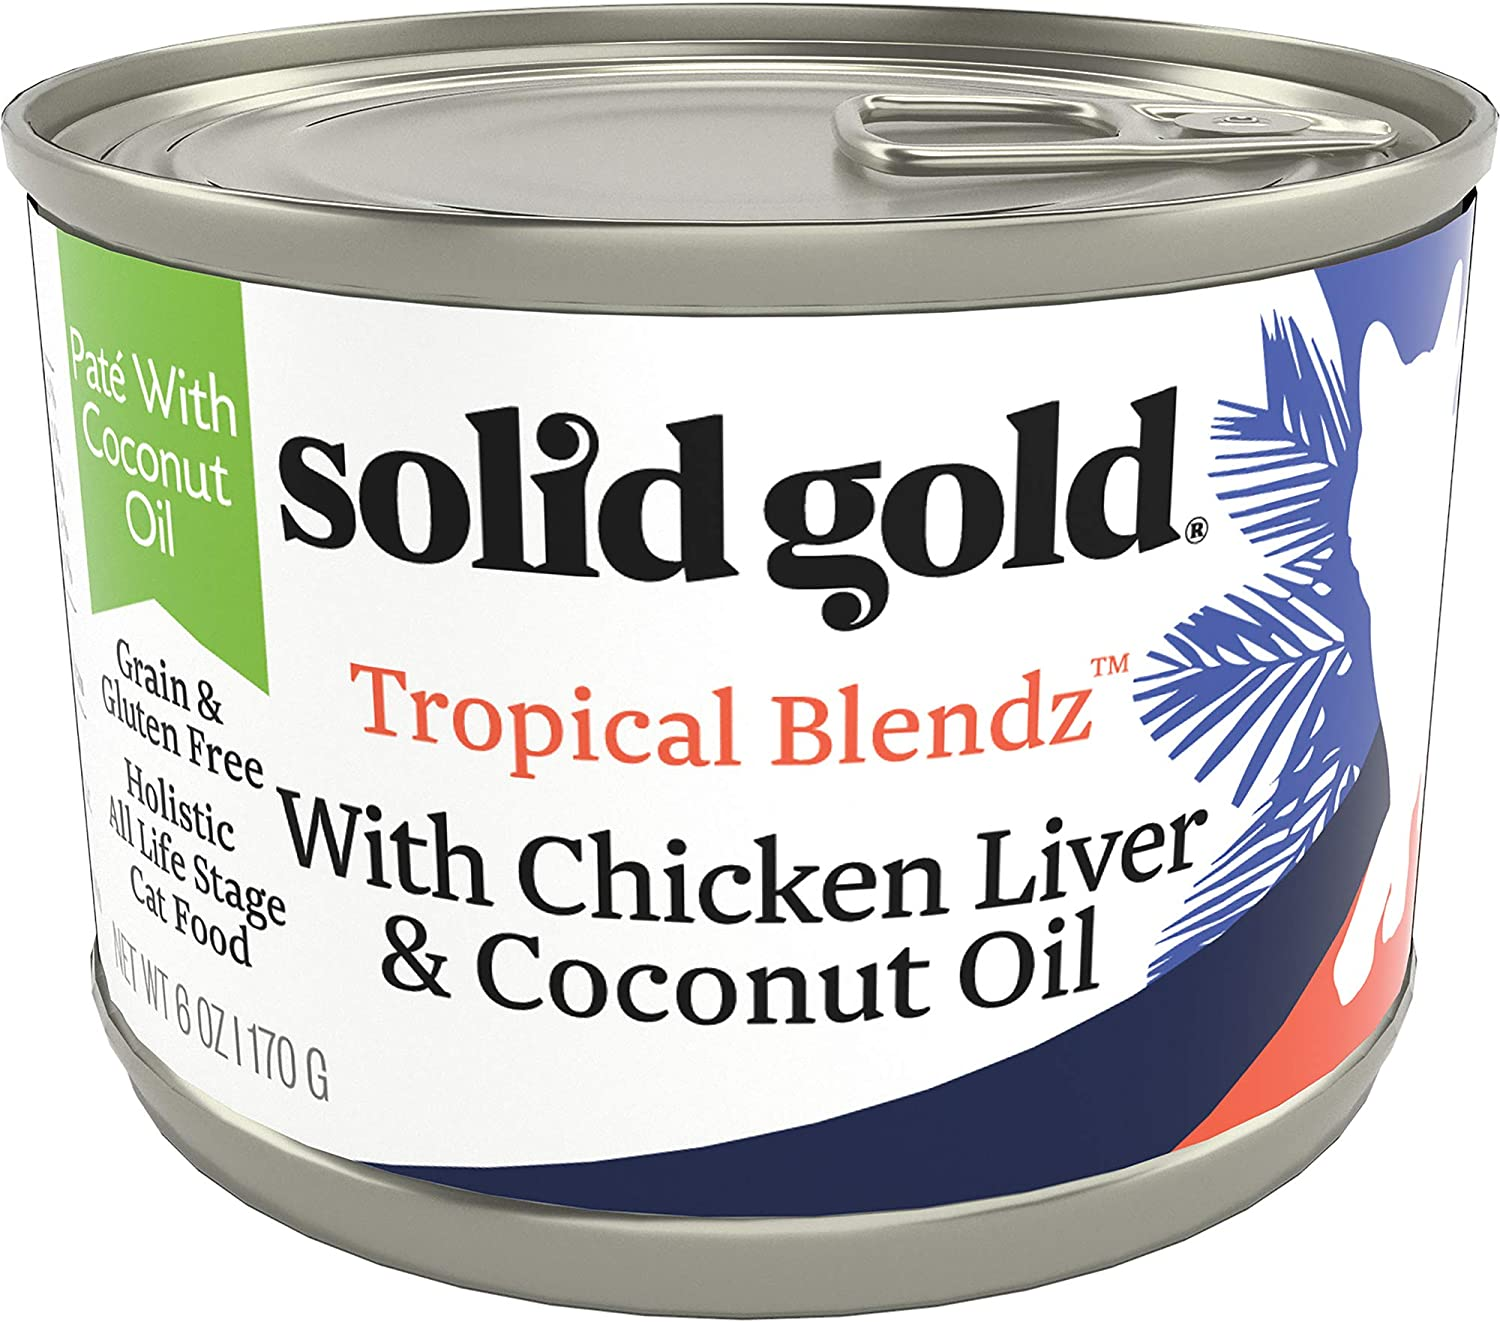 Solid Gold Tropical Blendz Pate with Coconut Oil - Grain-Free Wet Cat Food with Real Chicken Liver - 6oz (16 Count)